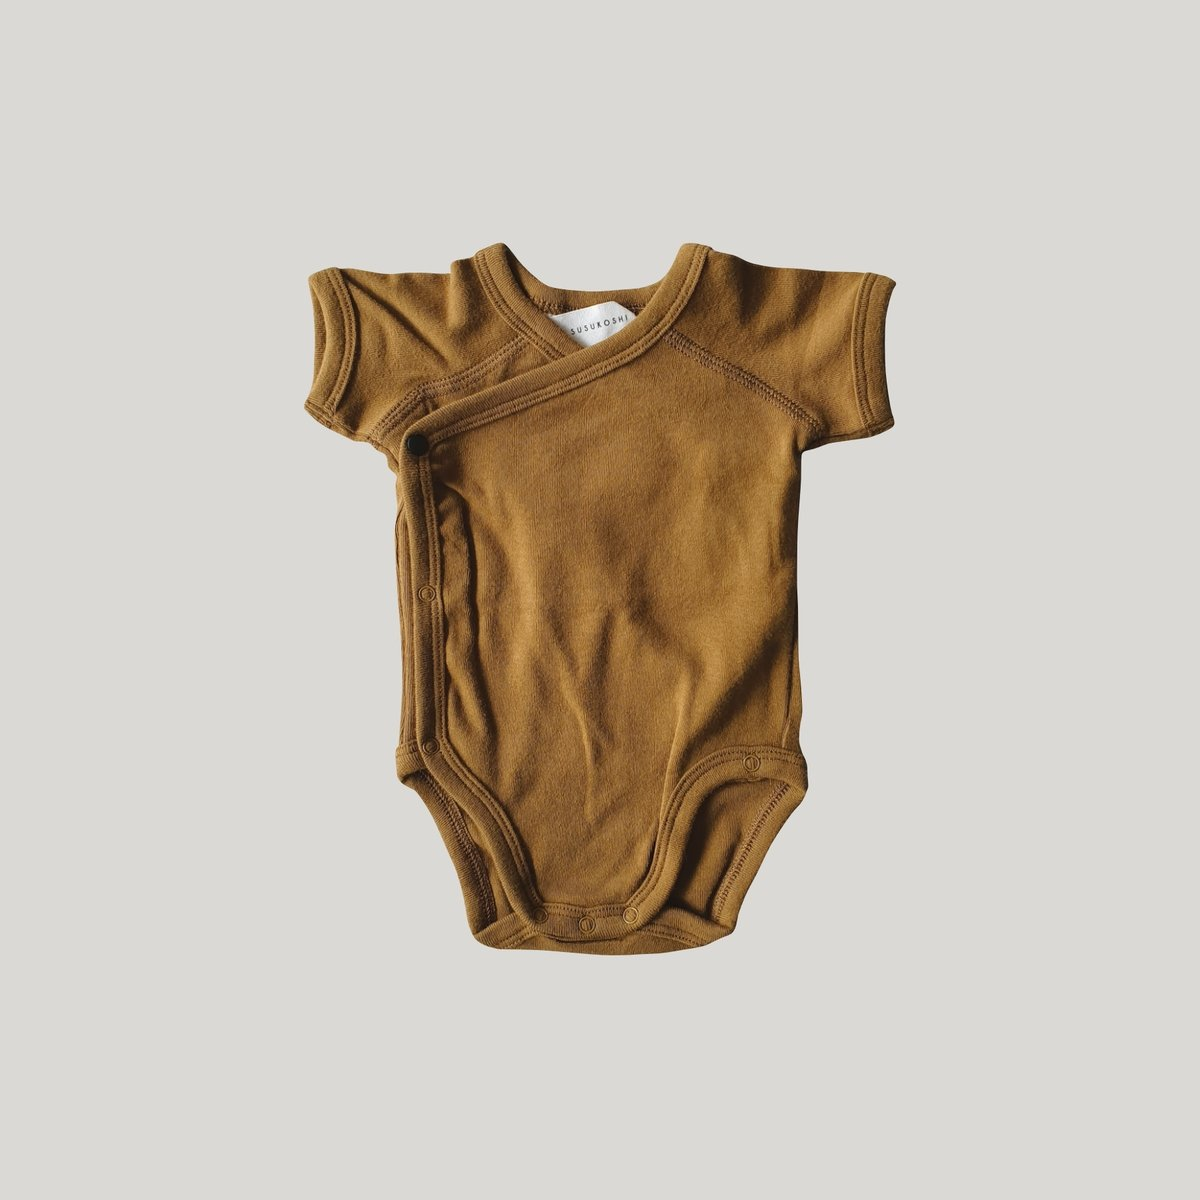 Kimono Body S/S Antique Brass für Baby und Kinder- Little Foxx Online Concept Store